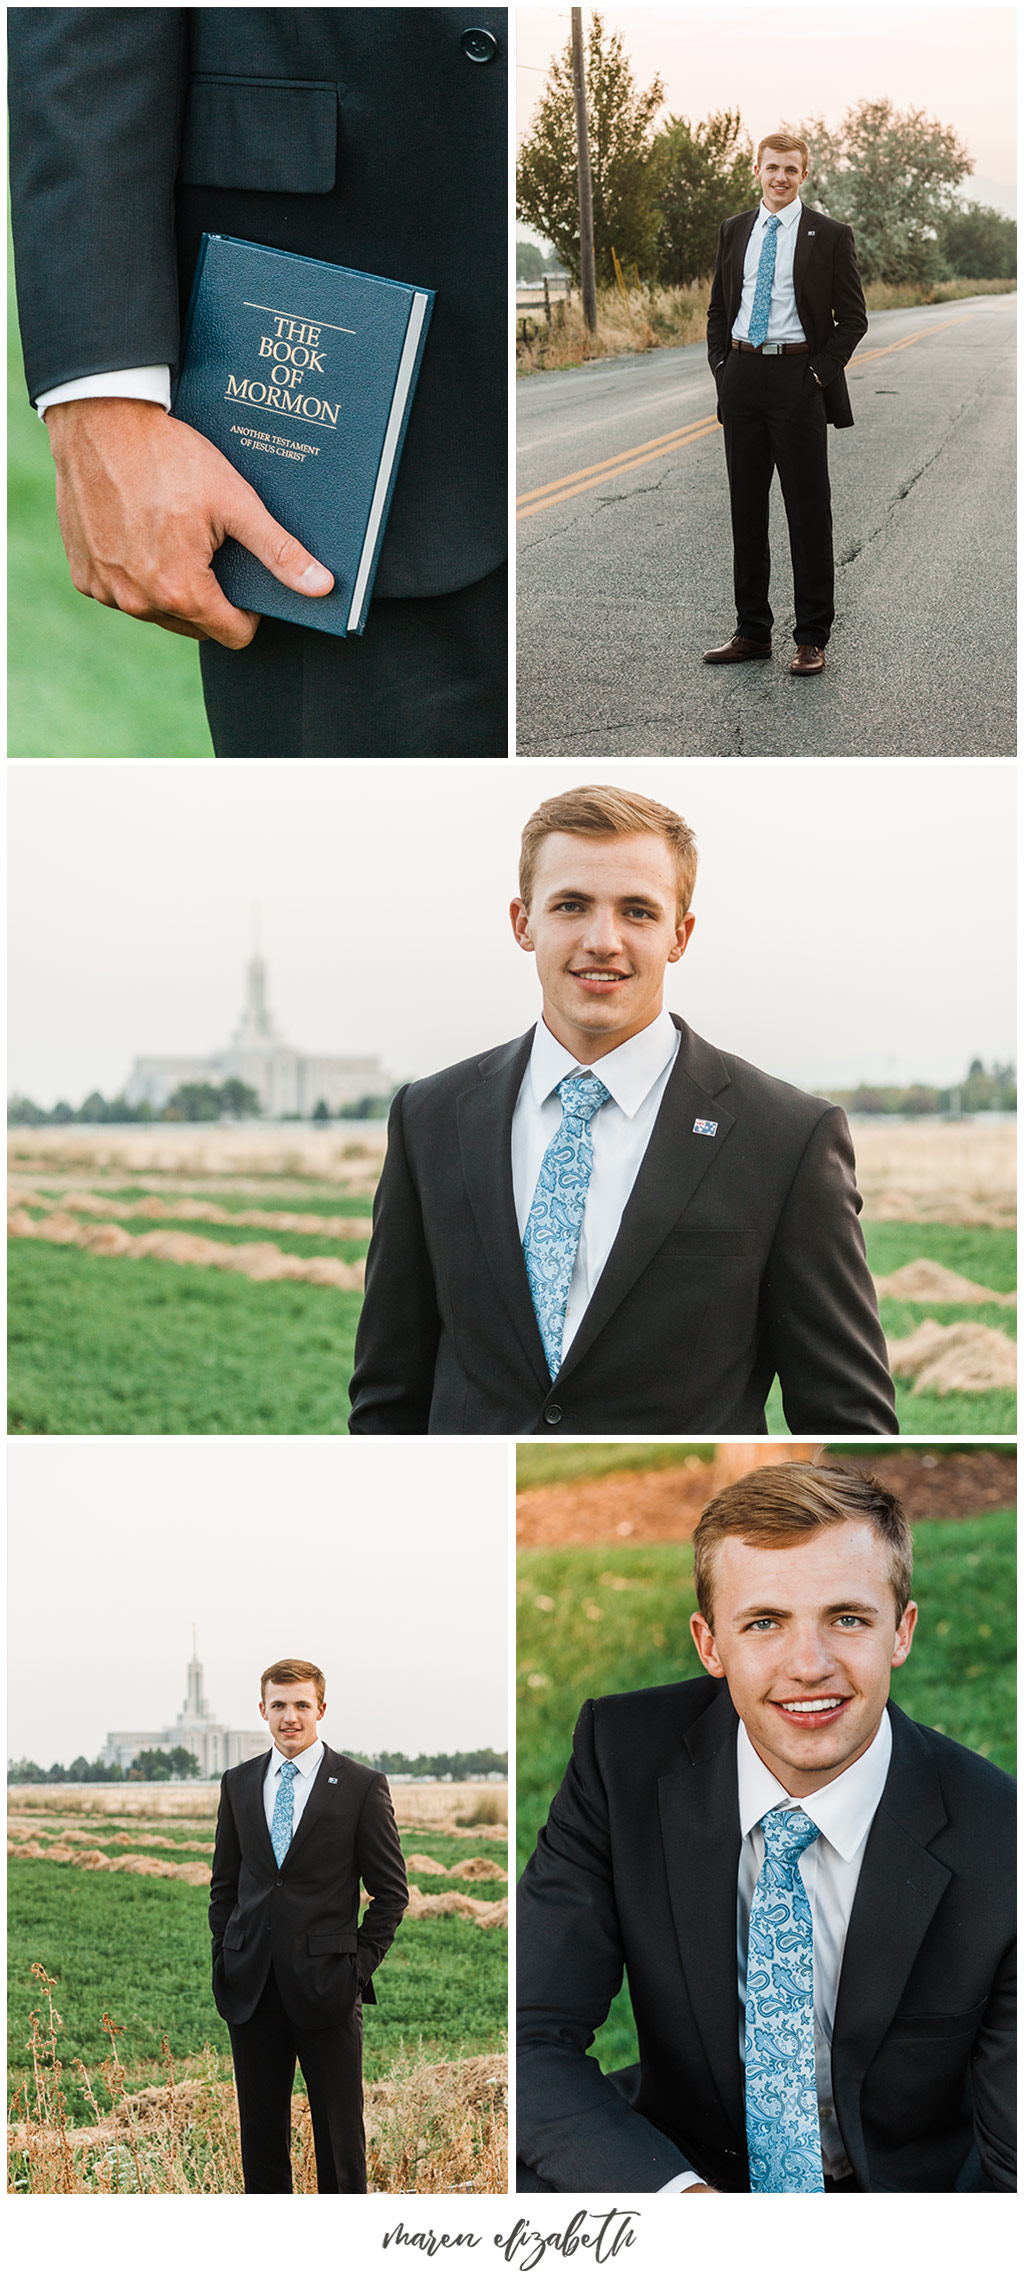 Since missionaries for the Church of Jesus Christ of Latter-day Saints can now serve when 18 I take a lot of Senior & Missionary pictures during the same session! Missionaries teach fundamental gospel truths that can change your life when you learn with real intent and put them to the test in your life. Find out more at Mormon.org. | Arizona Senior Photographer | Arizona Missionary Photographer | Maren Elizabeth Photography